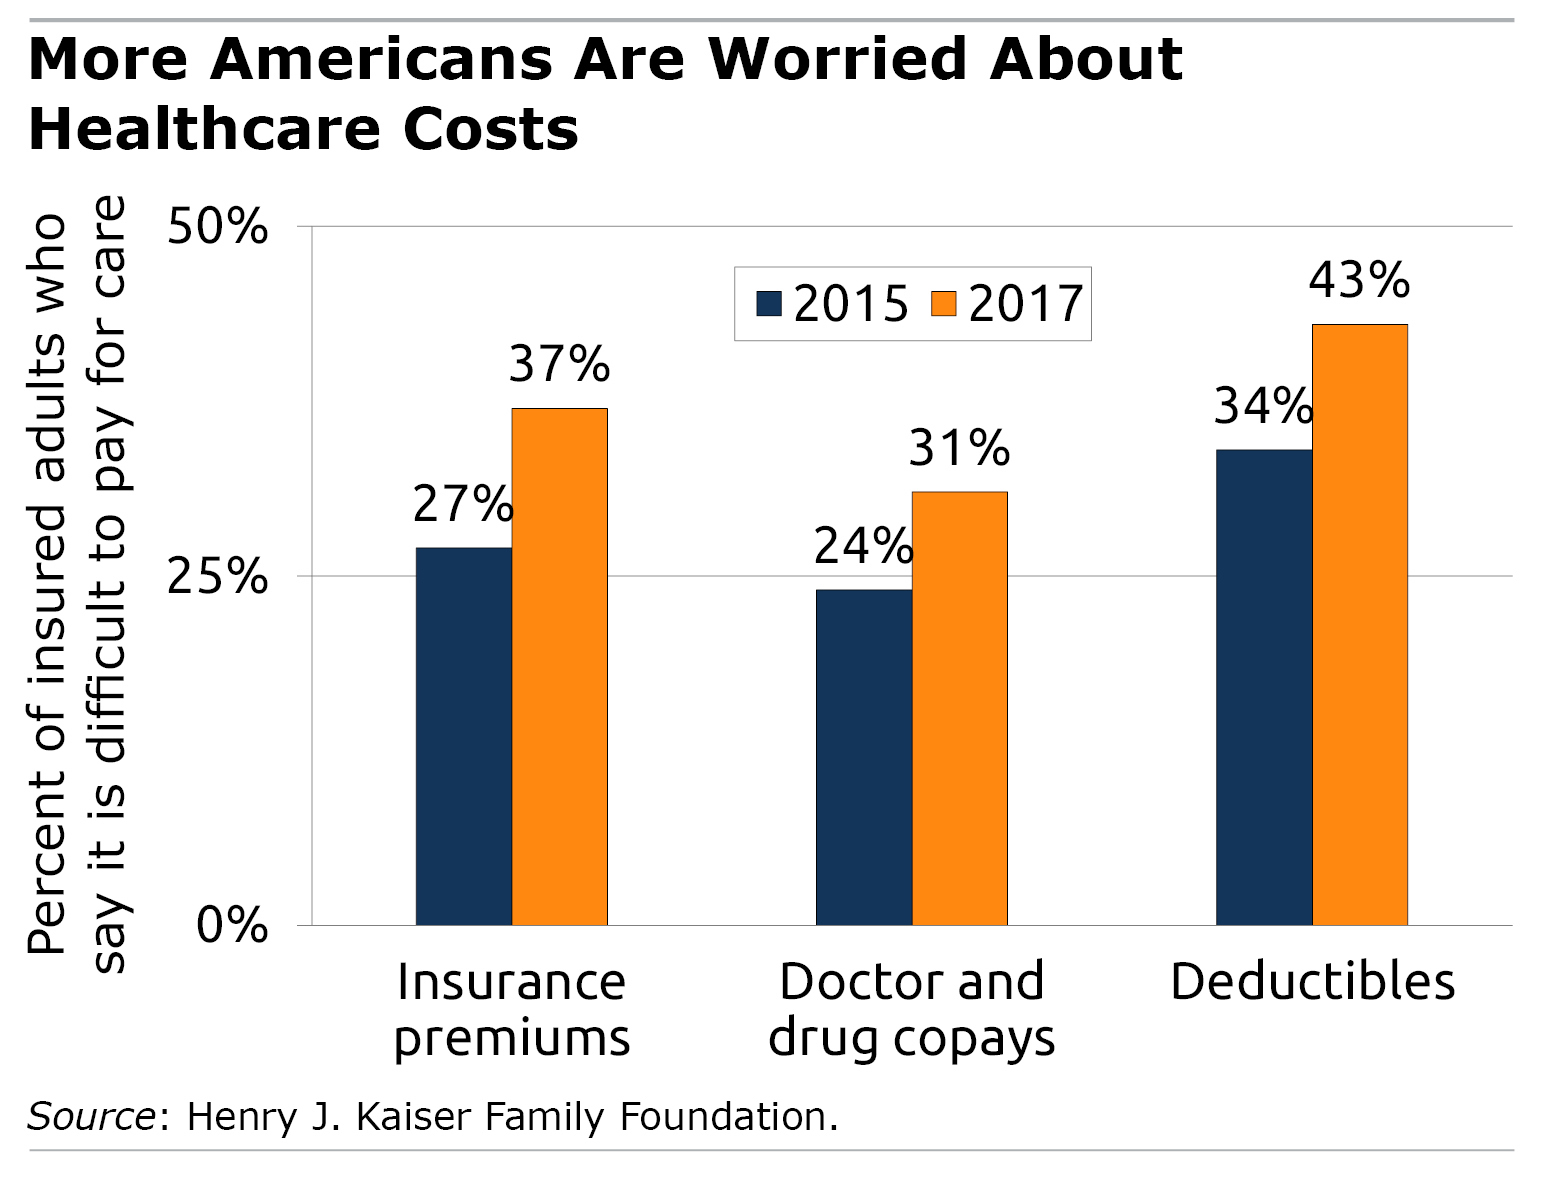 More American Are Worried About Healthcare Costs